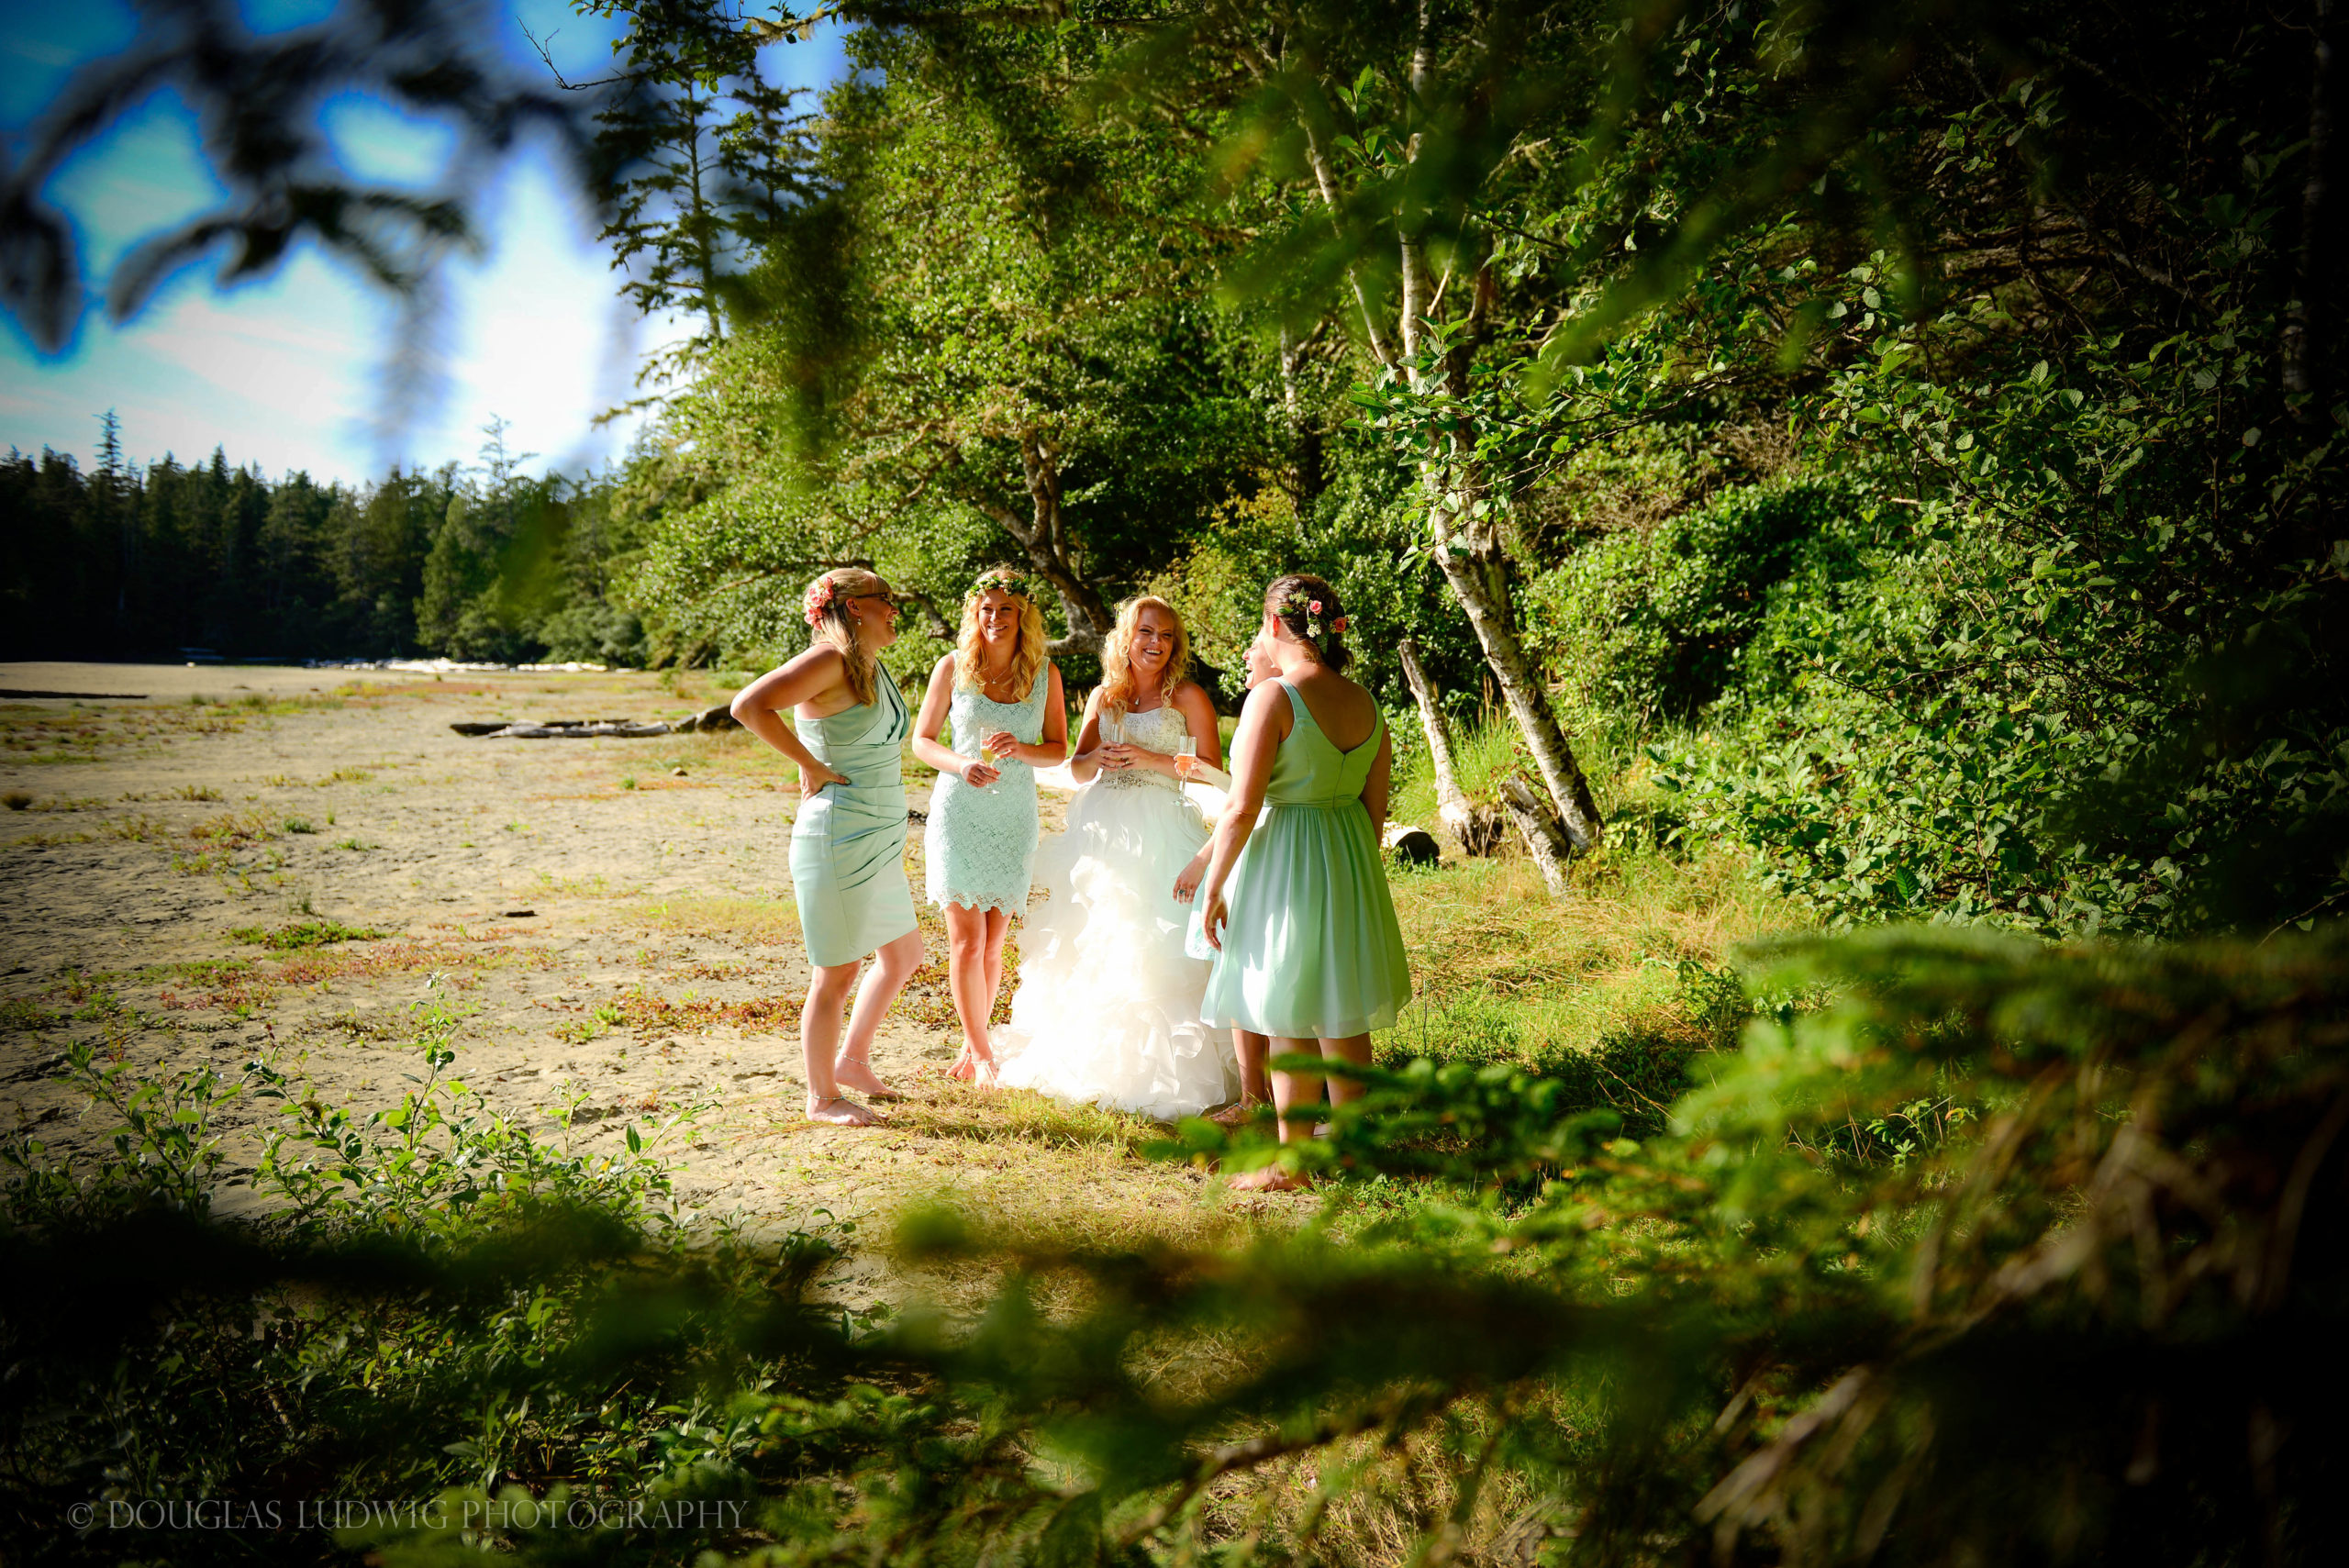 Douglas Ludwig_Bride and Bridesmaids